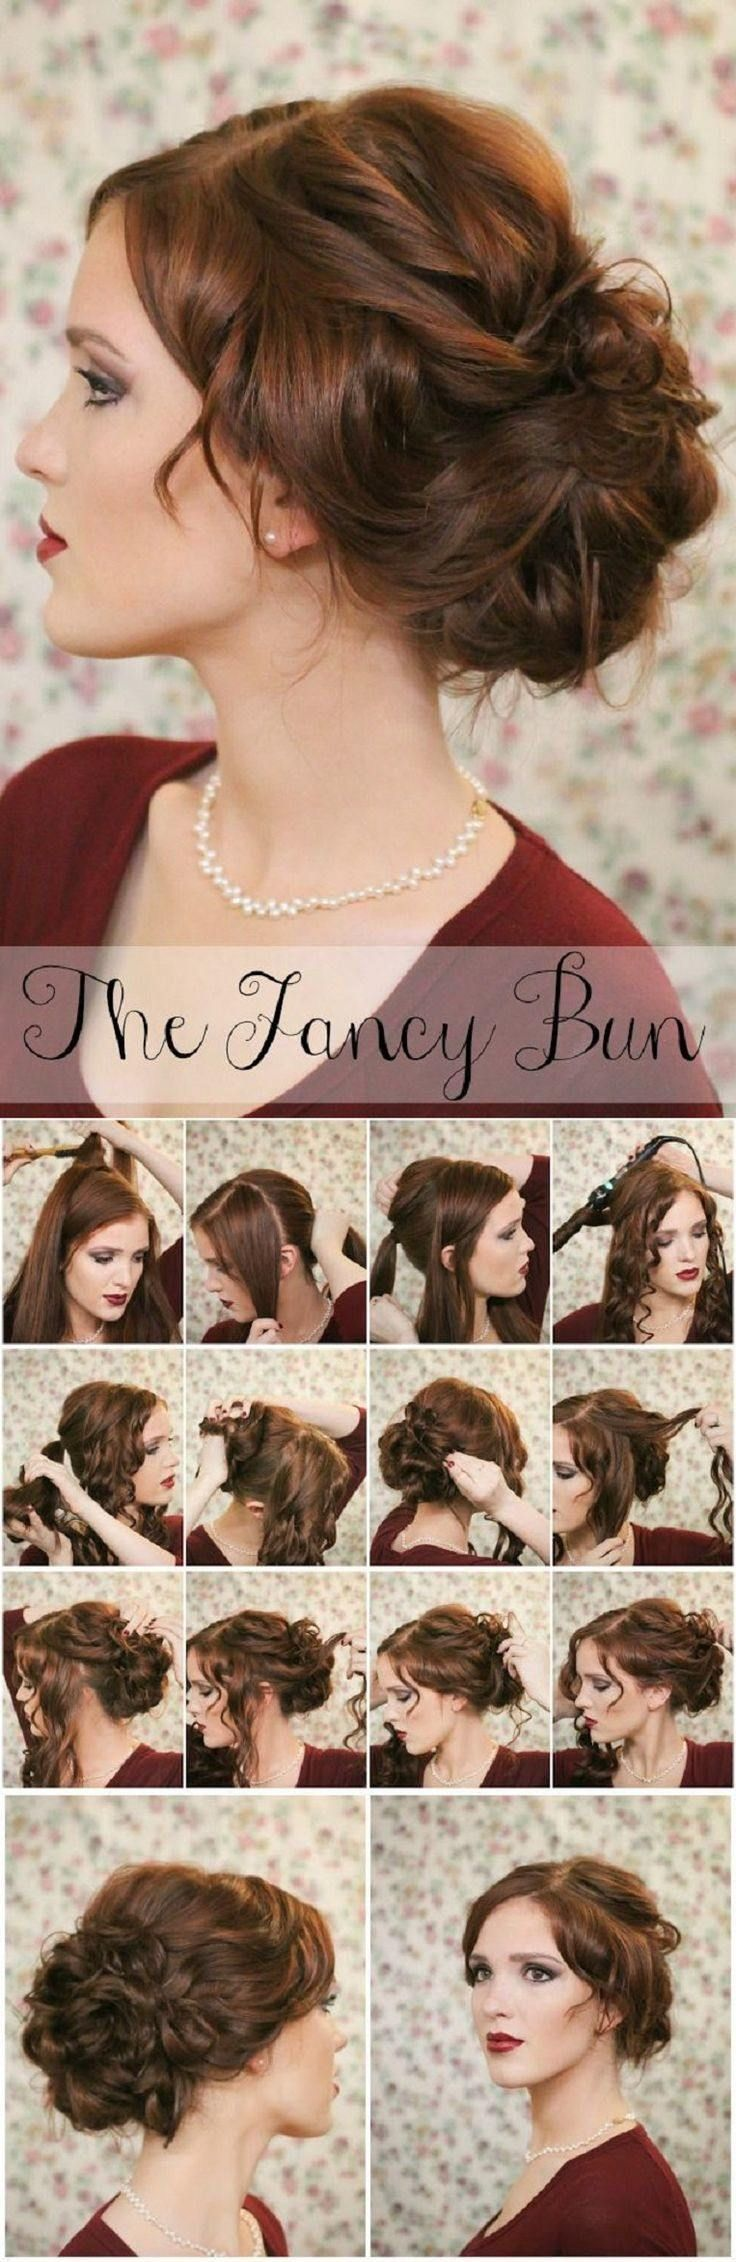 Tutorials: 12 Super Easy DIY Wedding Hairstyles - via Peinar.me